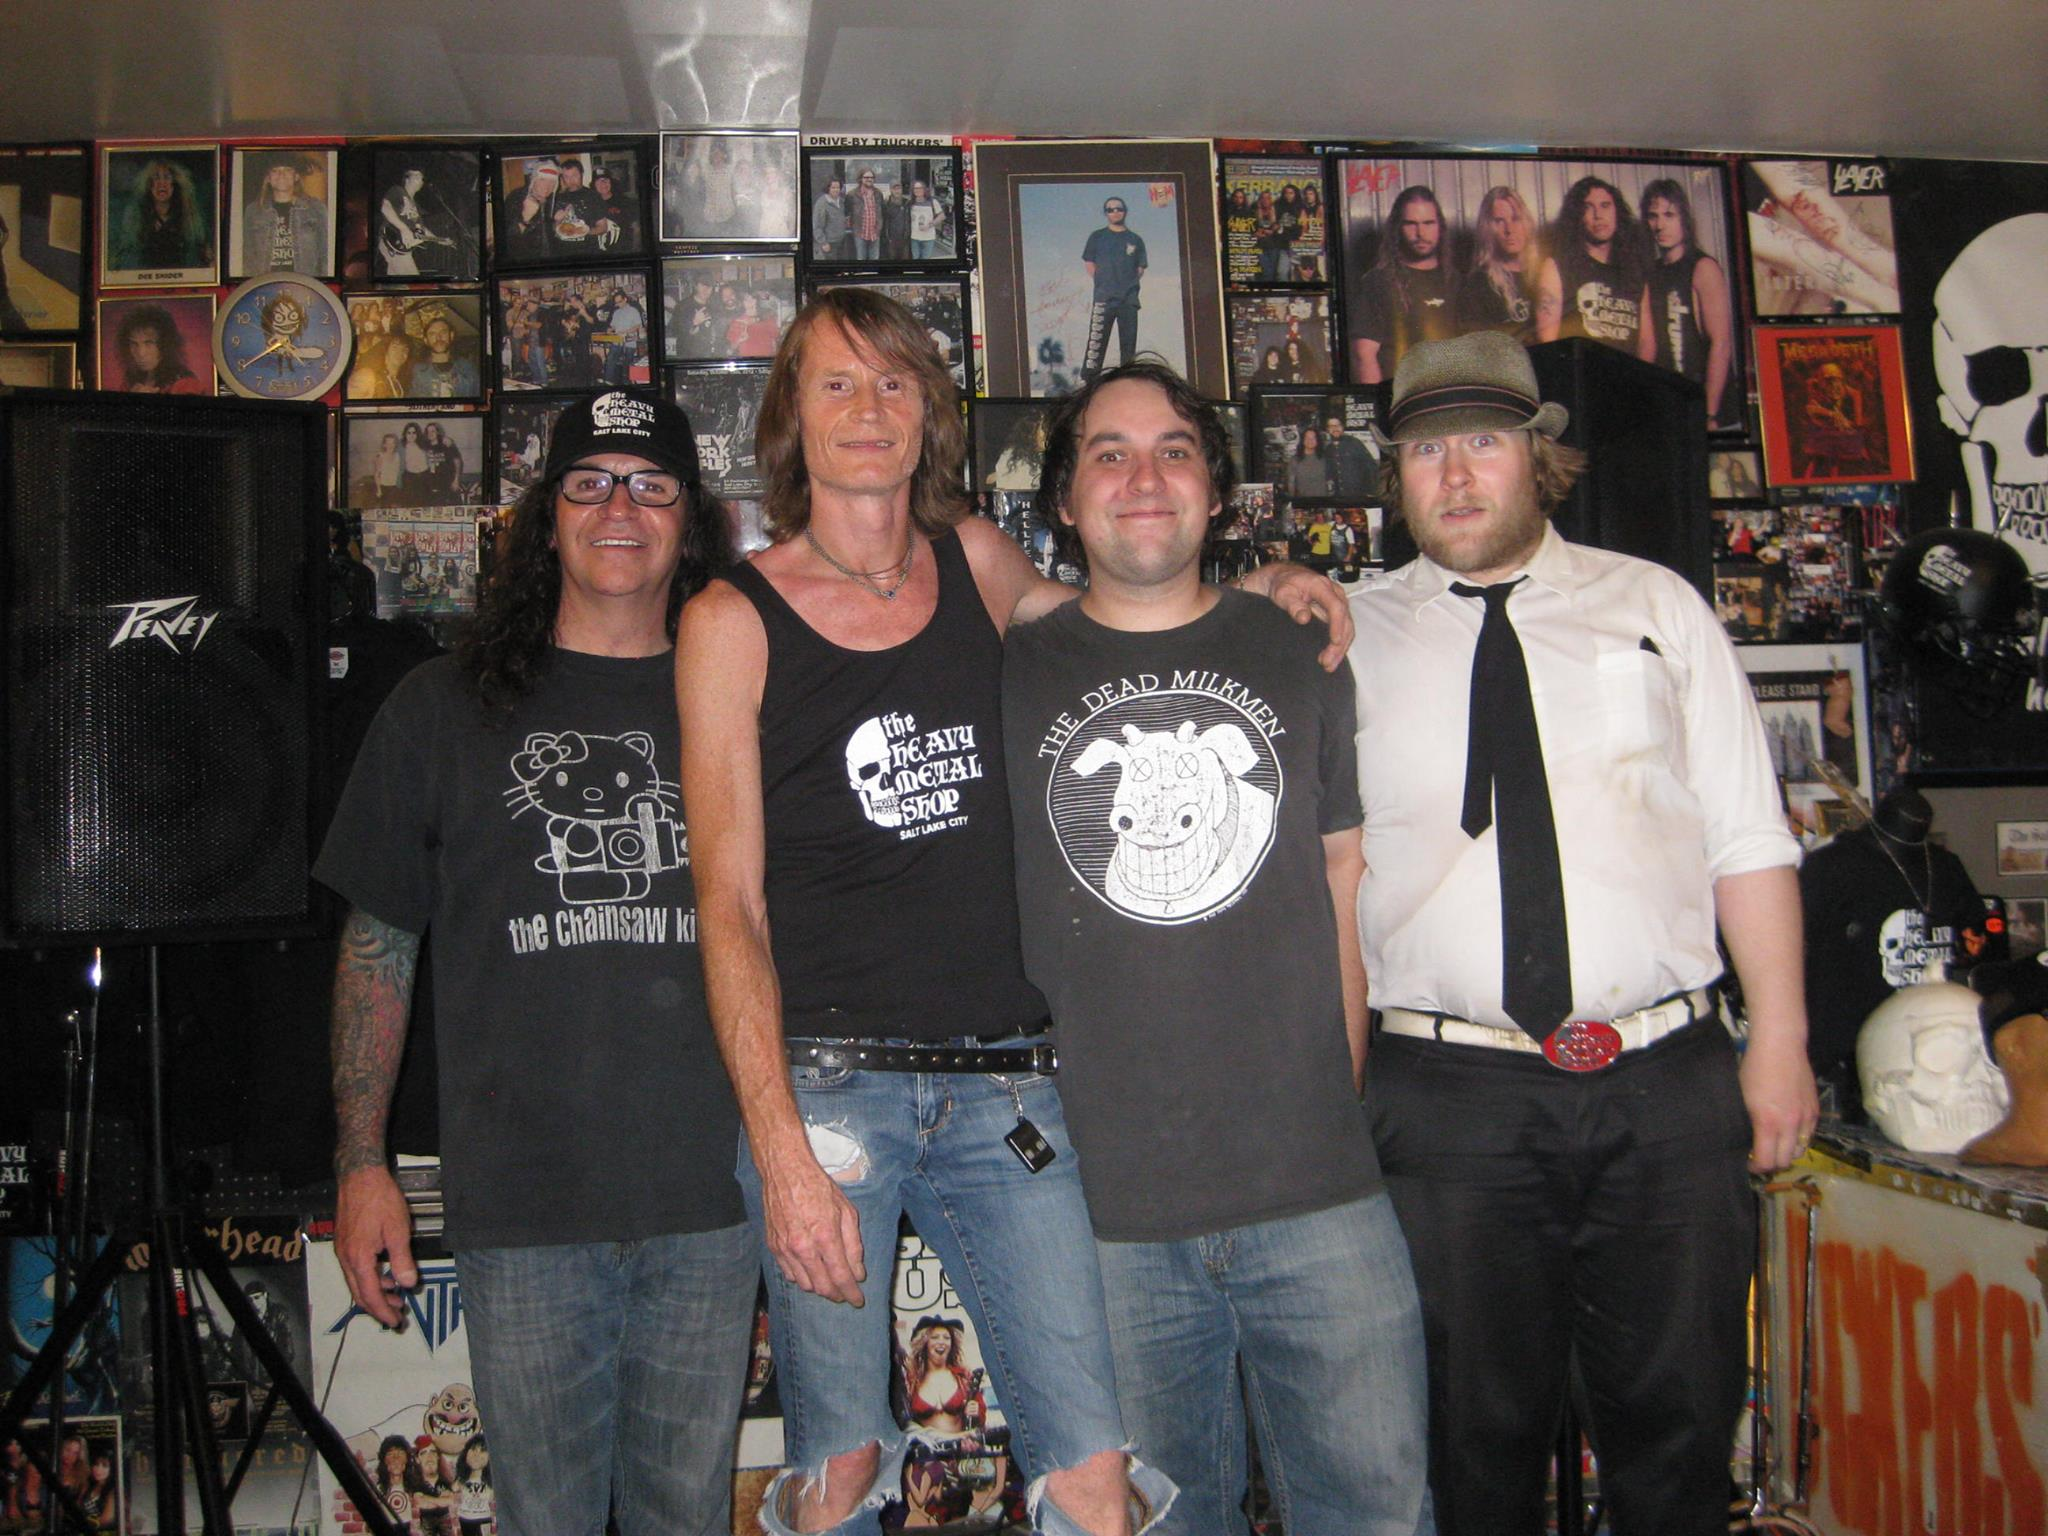 The Rifles meet Kevin Kirk, owner of the Heavy Metal Shop in SLC, during their 2013 tour